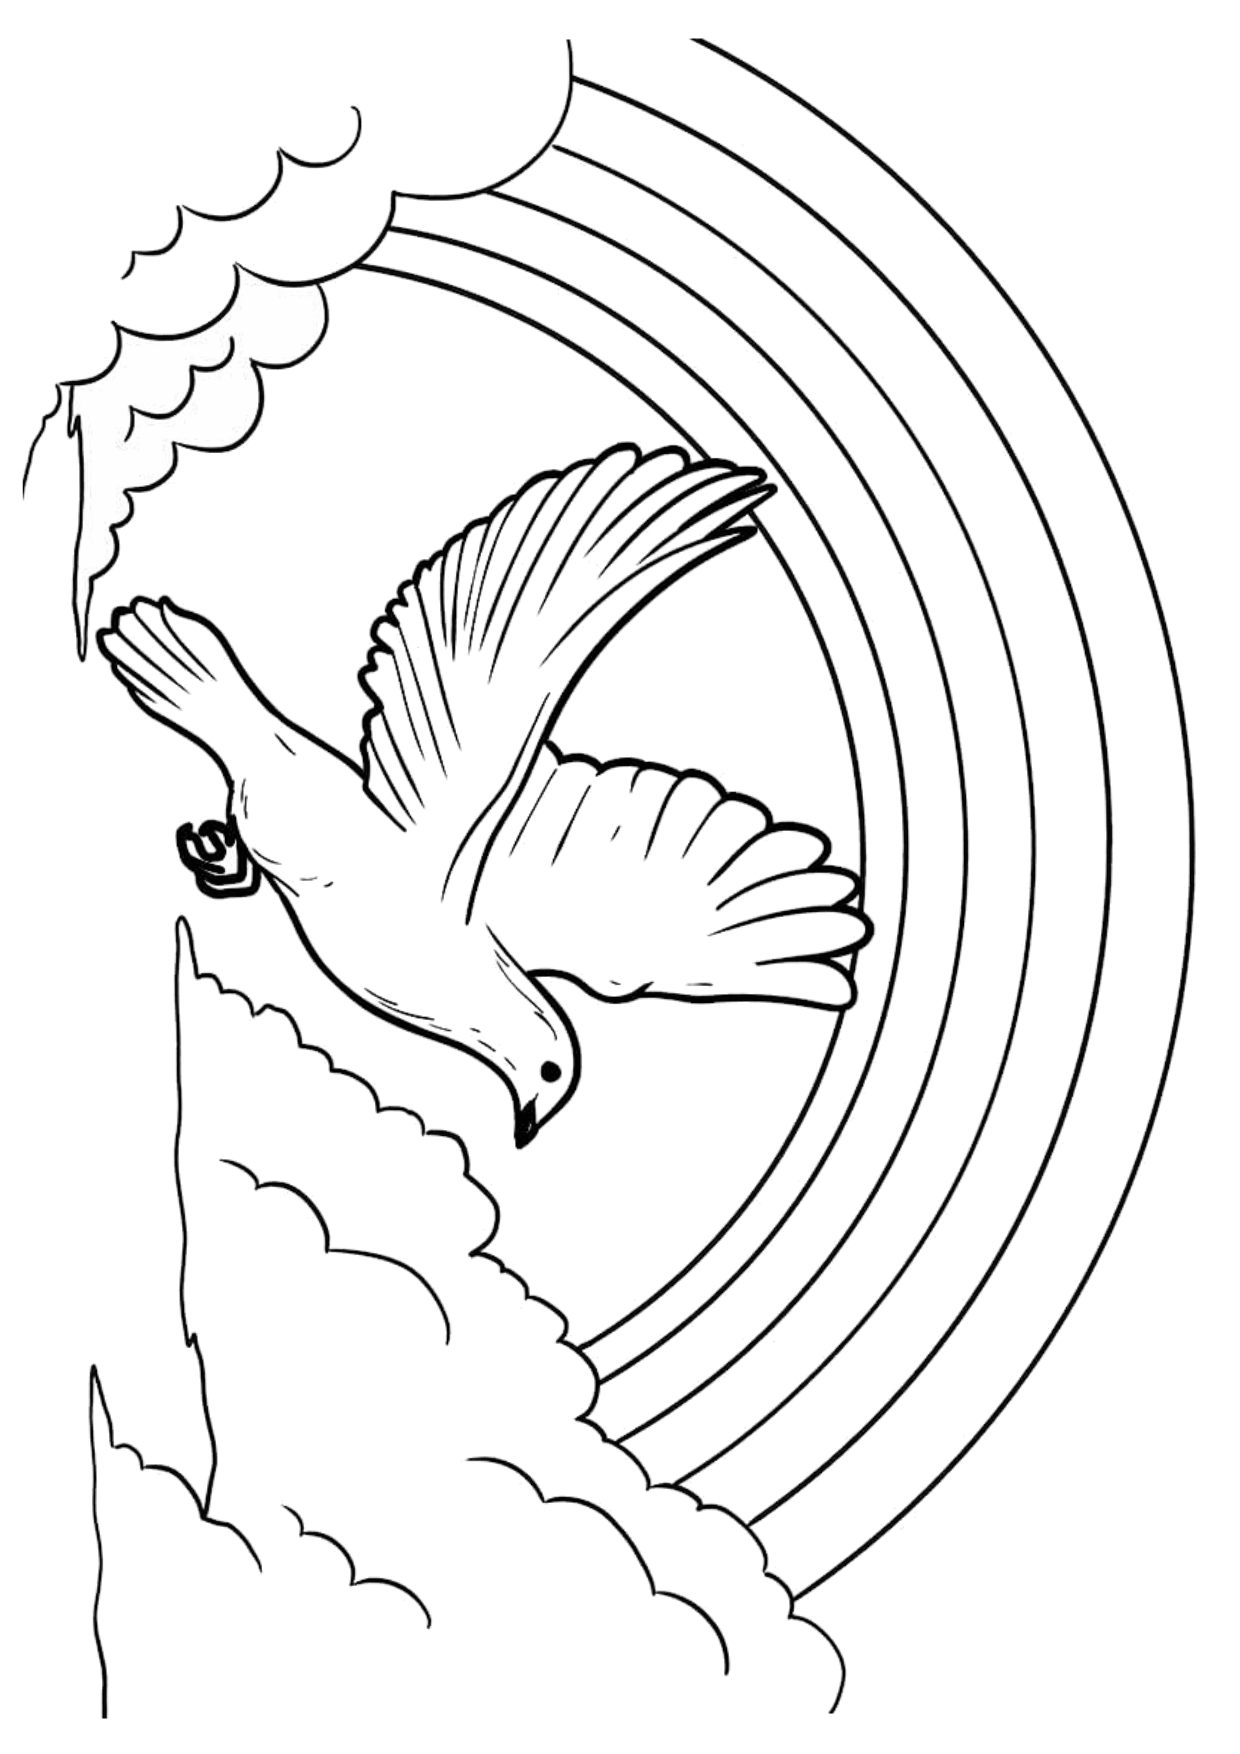 White dove flying and rainbow coloring page Wallpaper